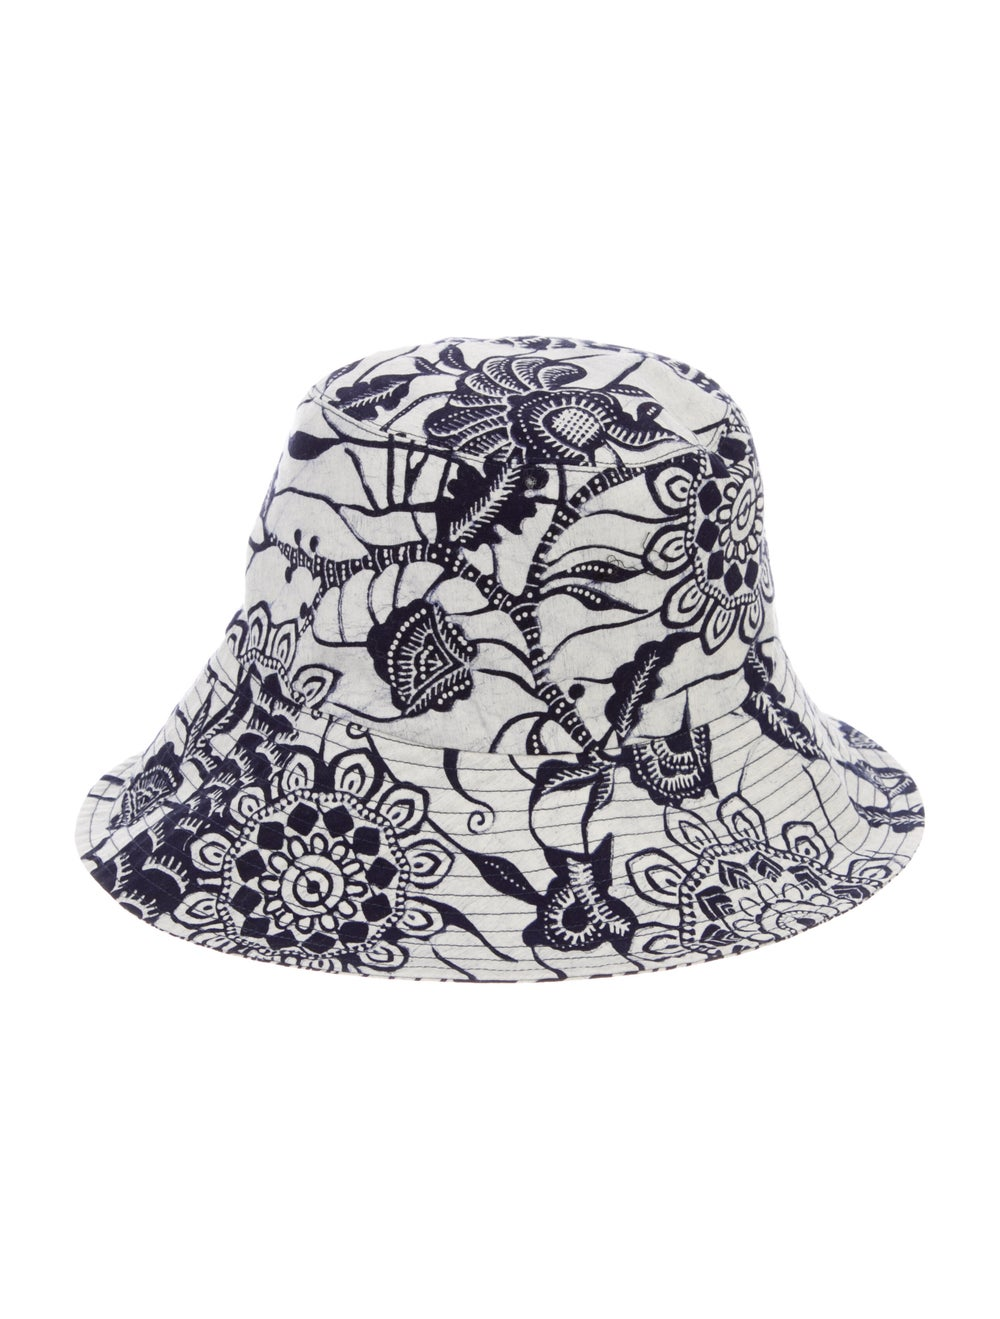 Christian Dior Printed Canvas Bucket Hat Navy - image 2